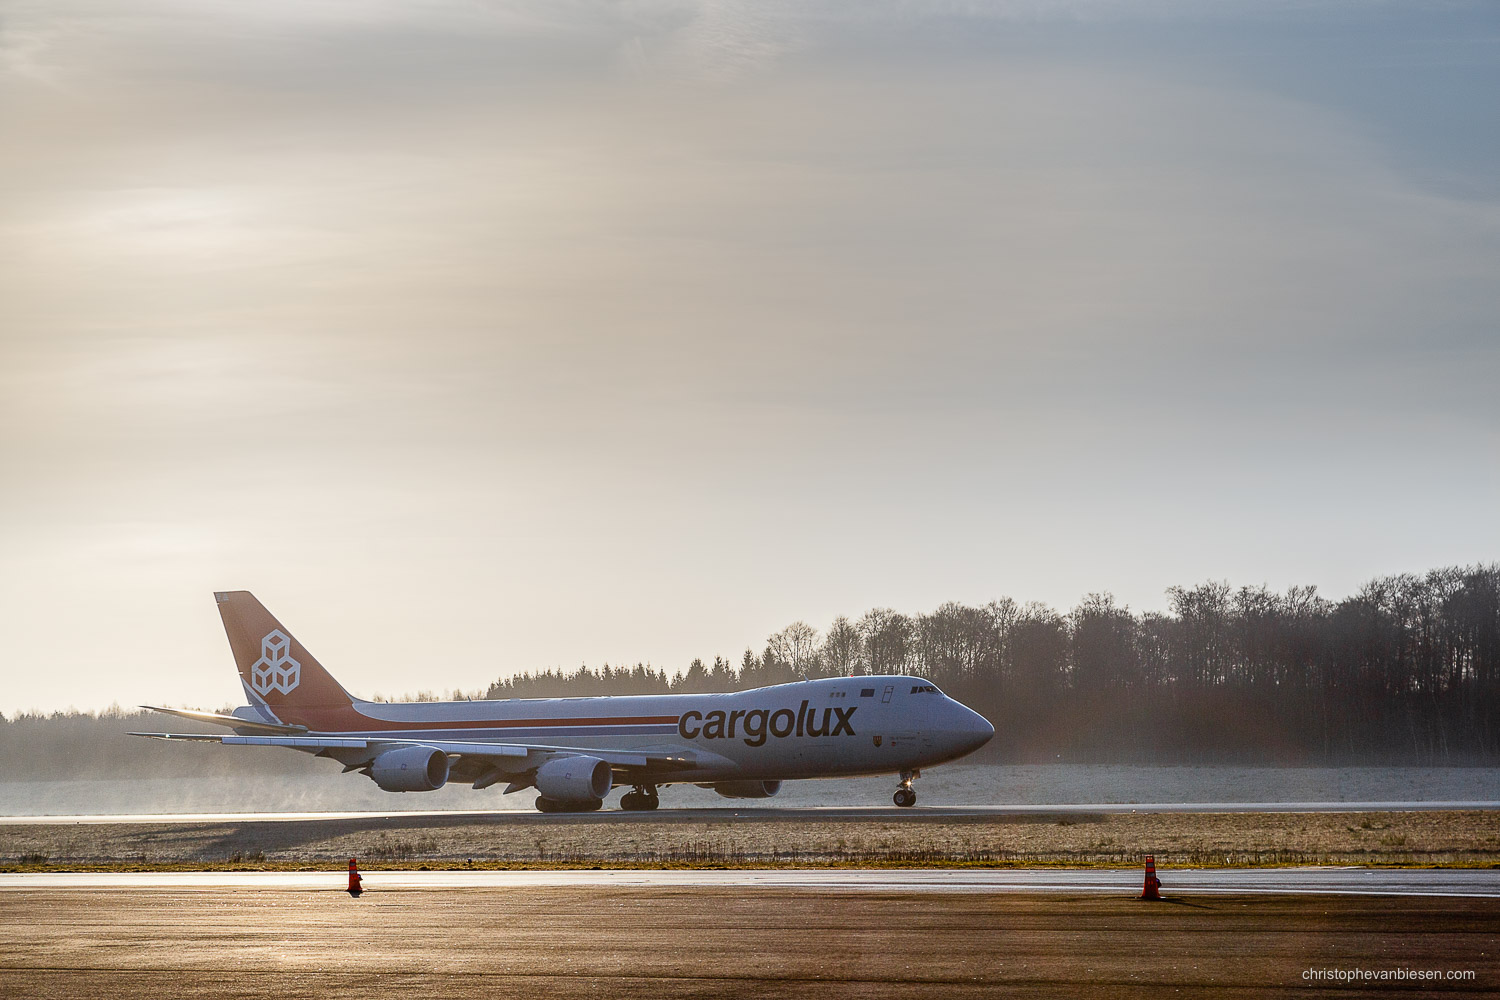 Work with me - Commission Work - Boeing 747 of Luxembourg's Cargolux fleet - Landing - Photography by Christophe Van Biesen - Luxembourg Landscape and Travel Photographer